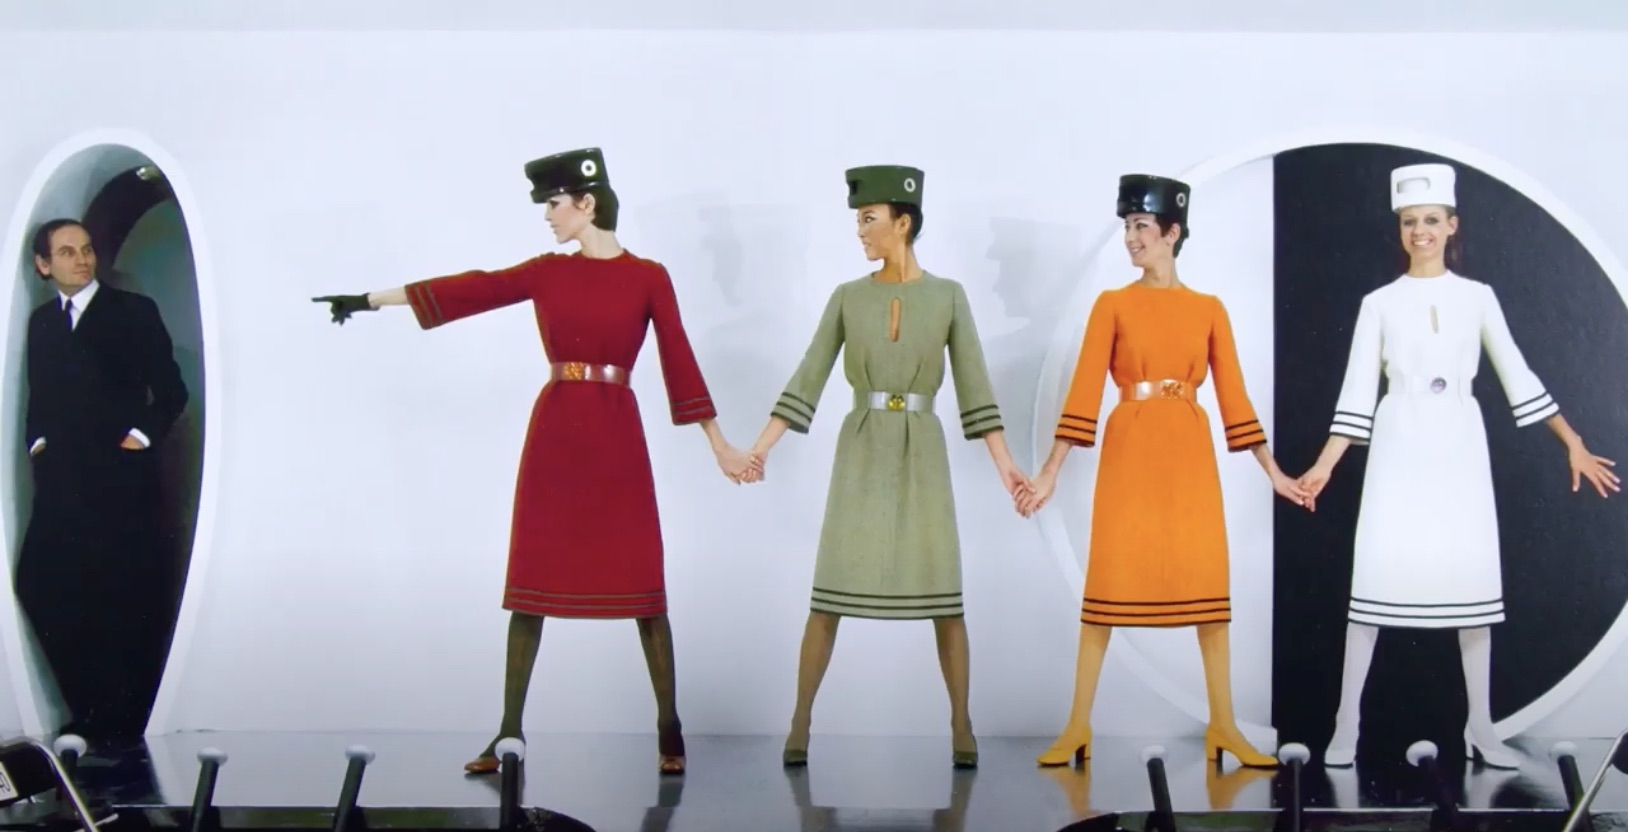 Pierre Cardin and models scene from the documentary House of Cardin